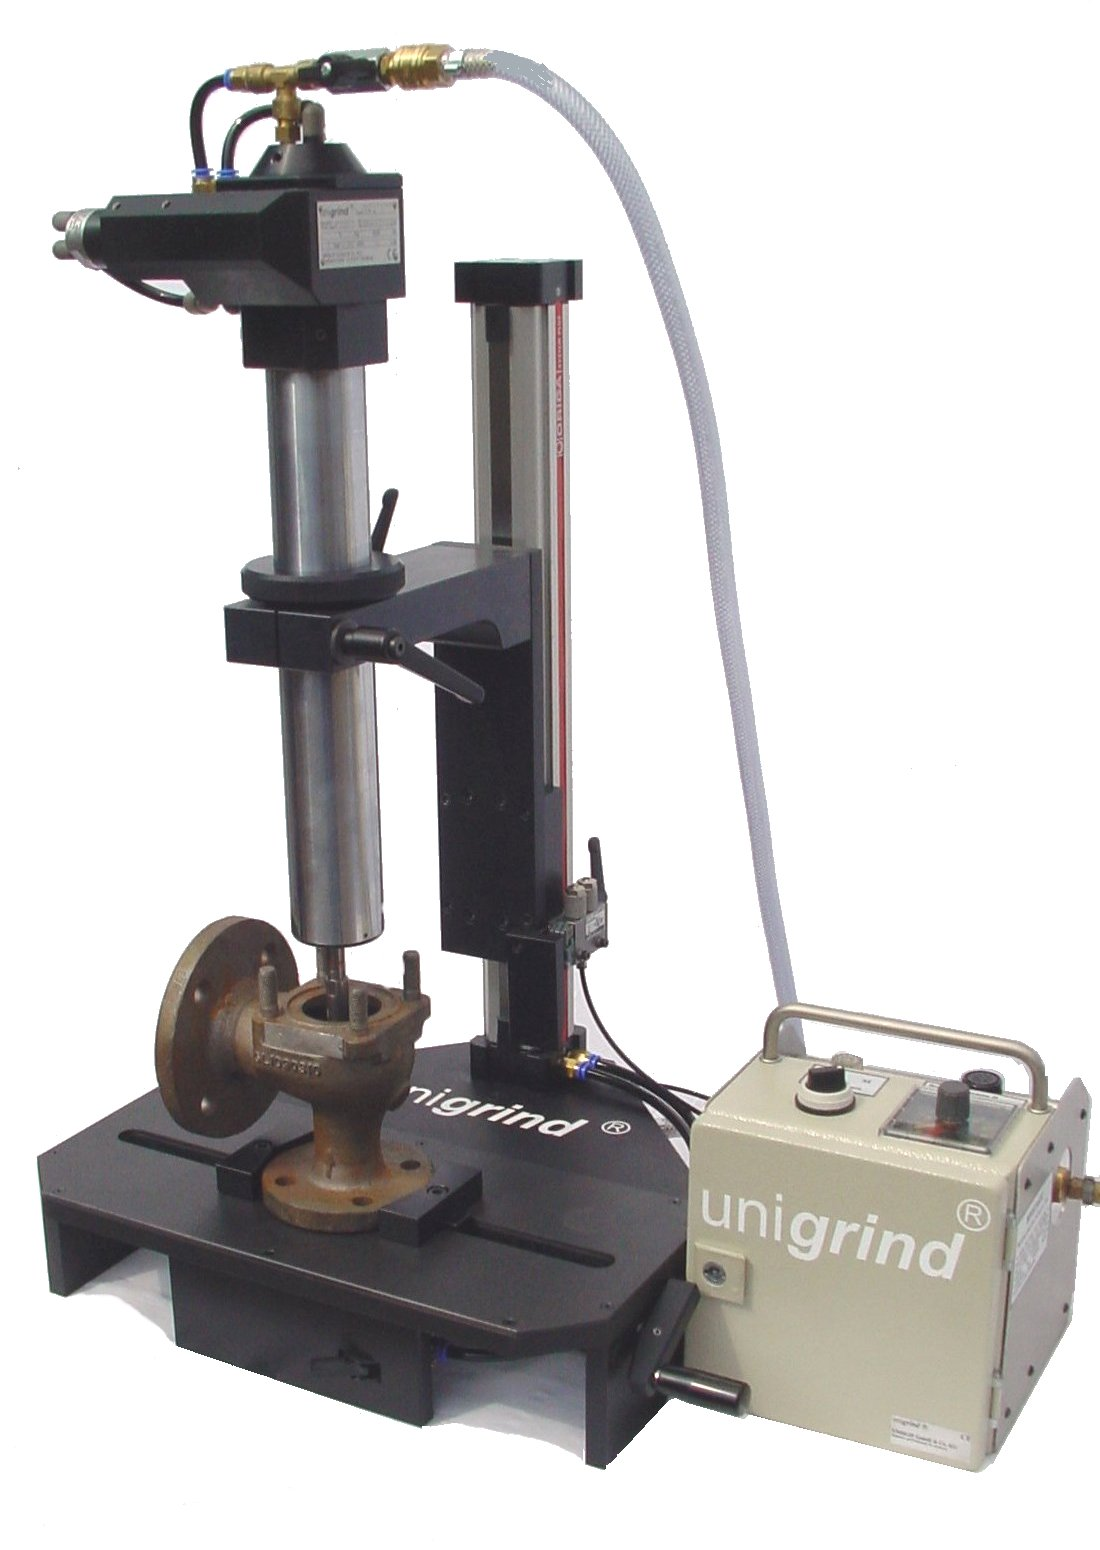 Unigrind SVS Portable Valve Grinding & Lapping Machine